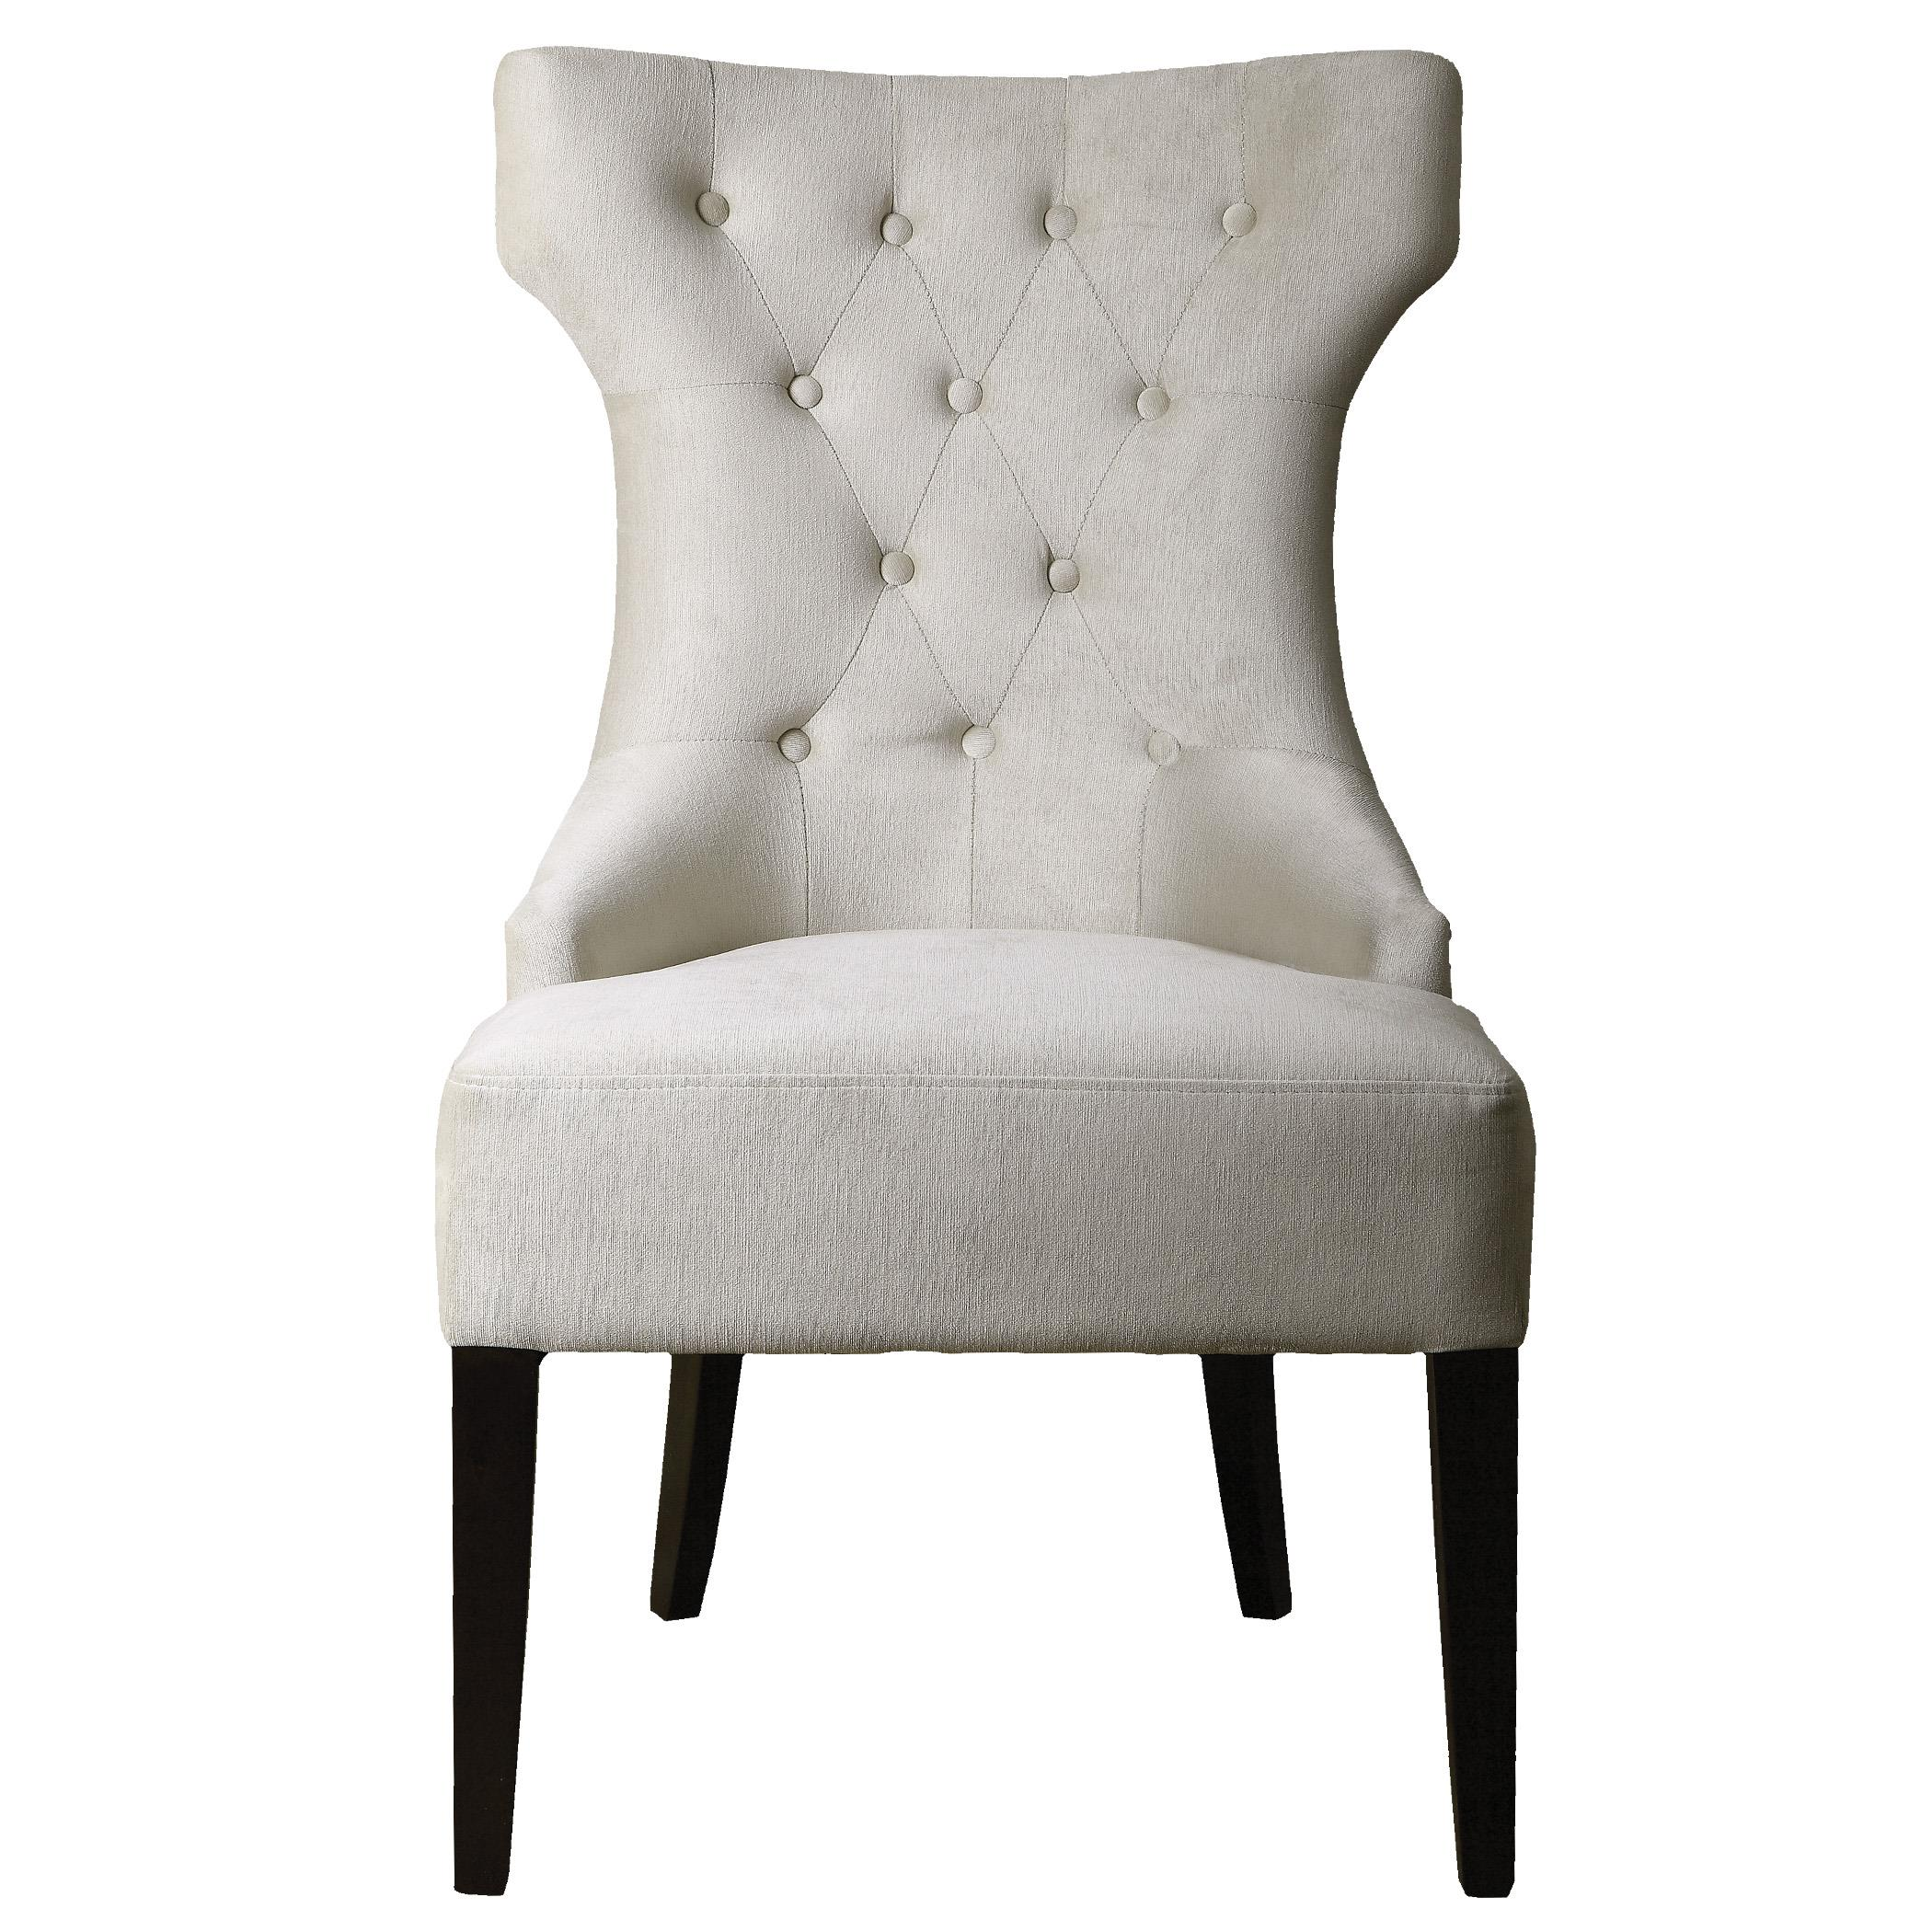 Uttermost Accent Furniture Arlette Tufted Wing Chair - Item Number: 23239